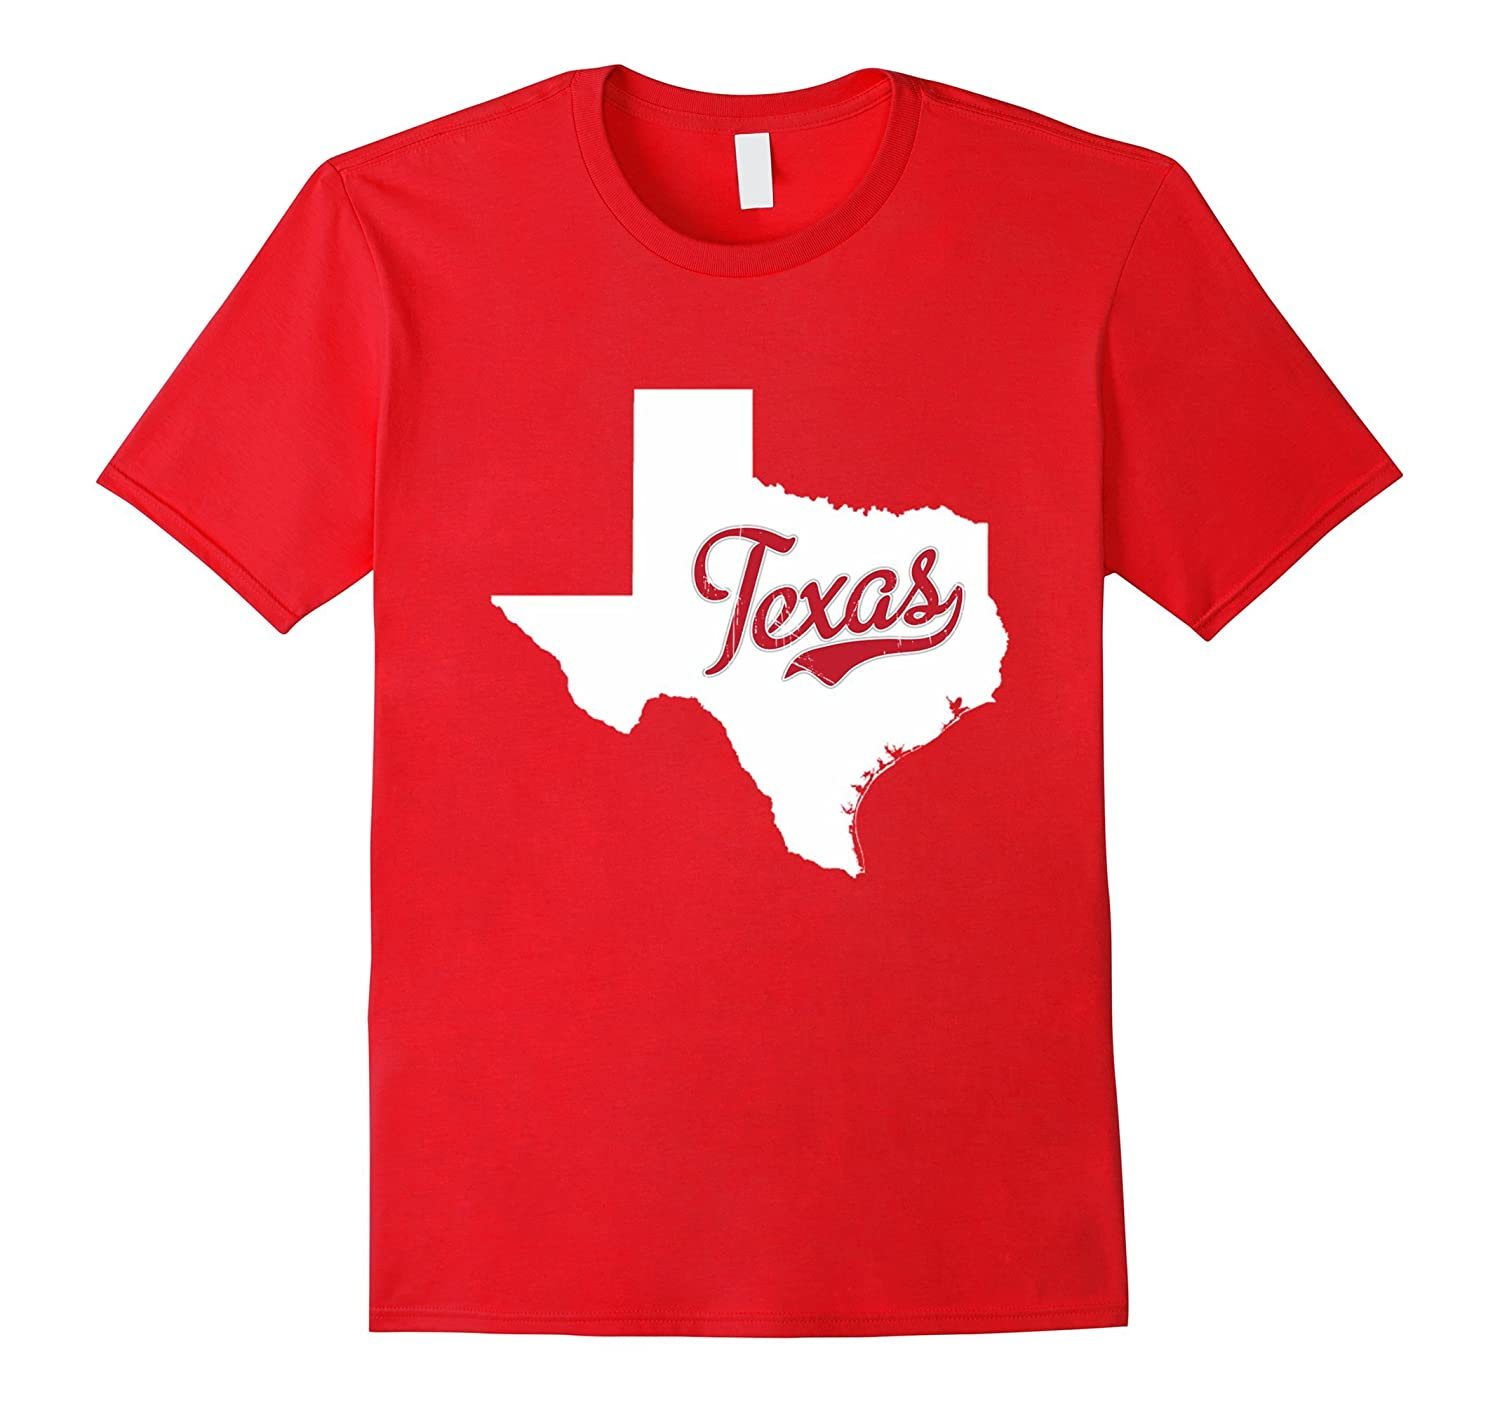 Texas is my home T Shirt - Funny Texas map Shirts-Vaci